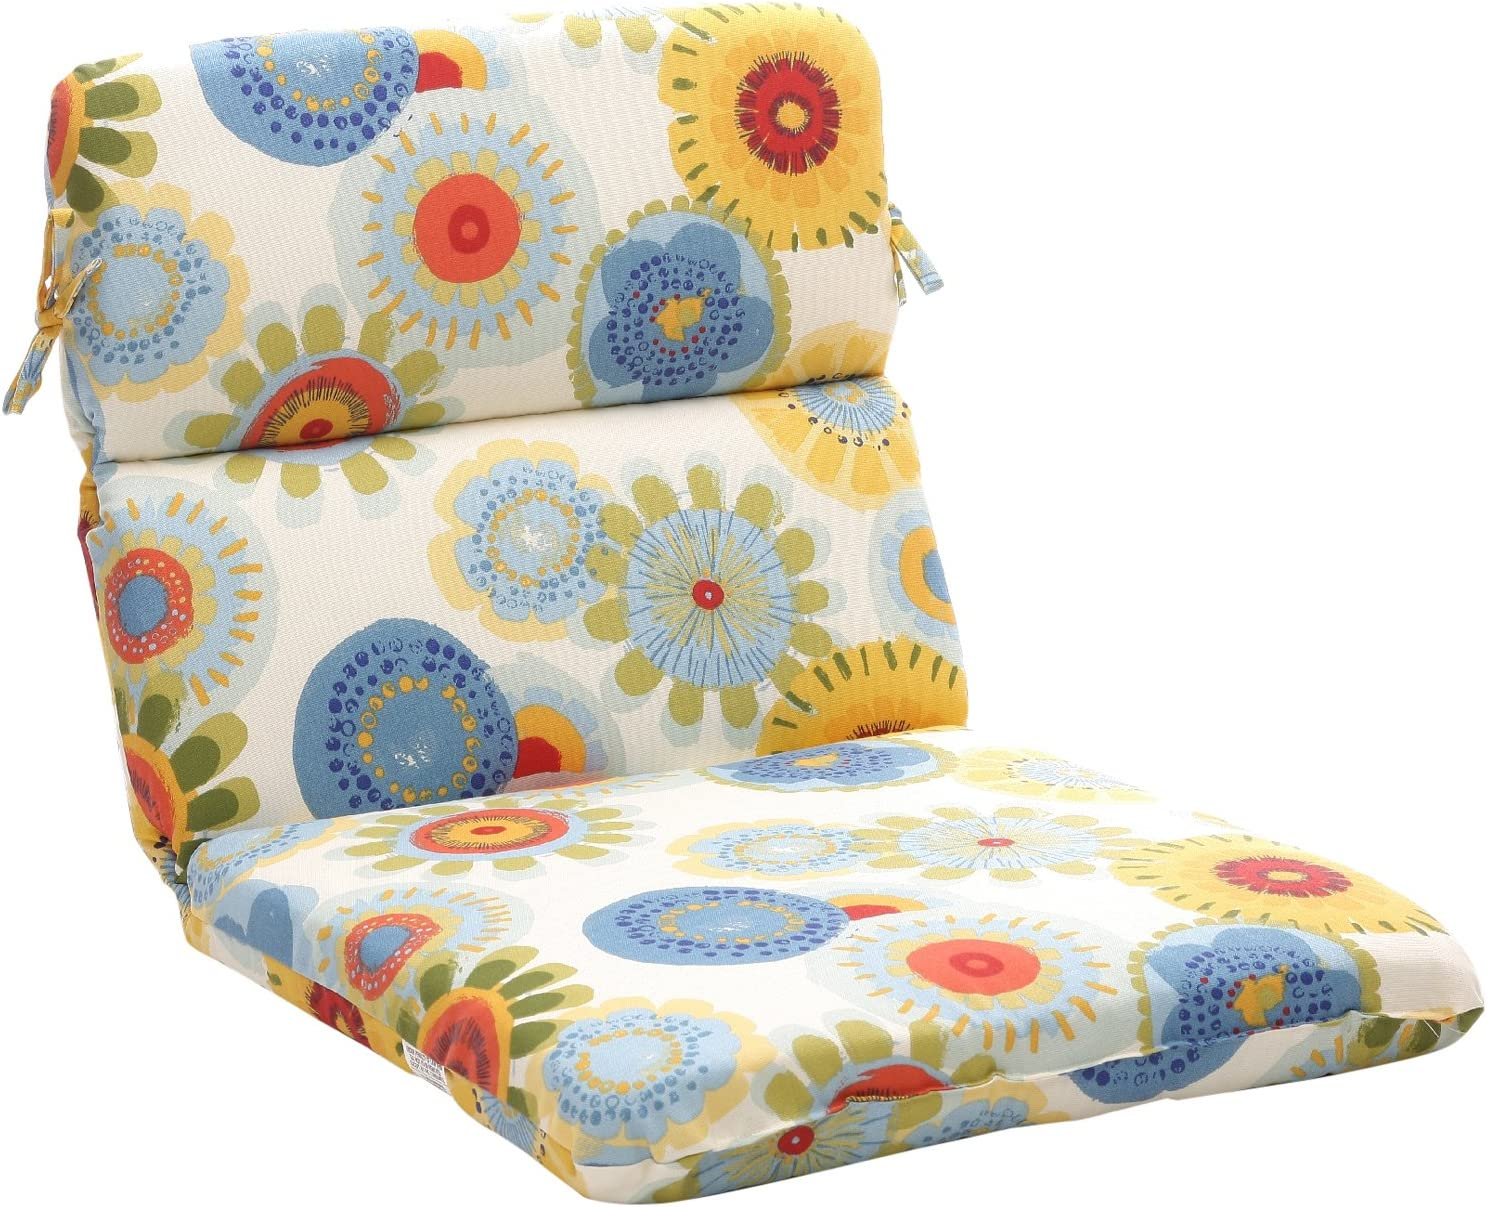 "Pillow Perfect Outdoor/Indoor Crosby Confetti Round Corner Chair Cushion, 40.5"" x 21"", Multicolored"